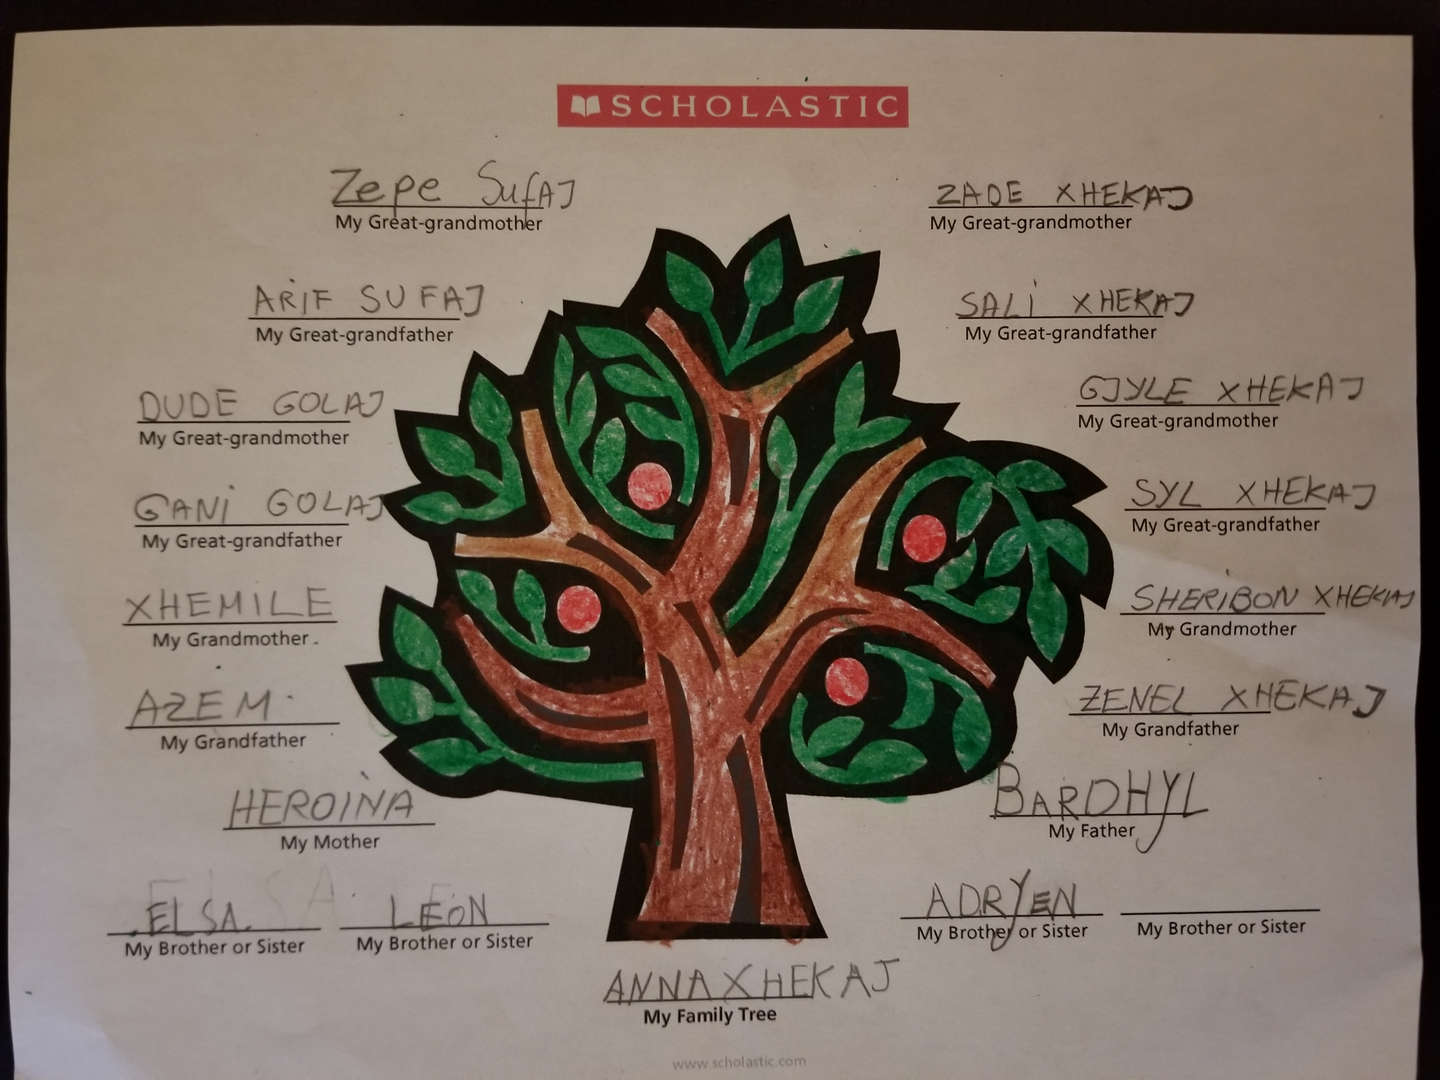 Ms. Diciembri's class creates heritage trees